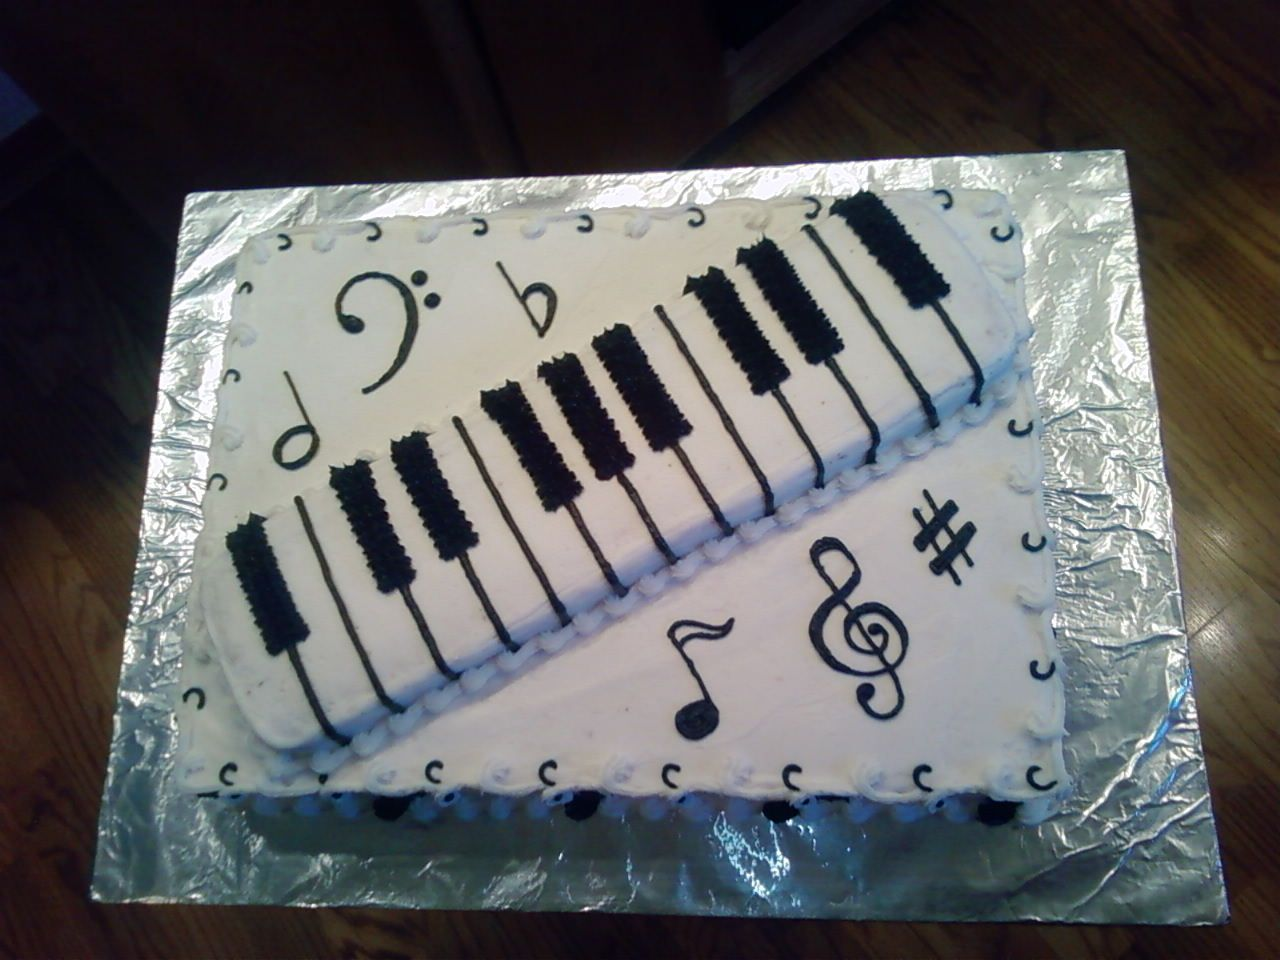 How To Make A Piano Cake Step By Step